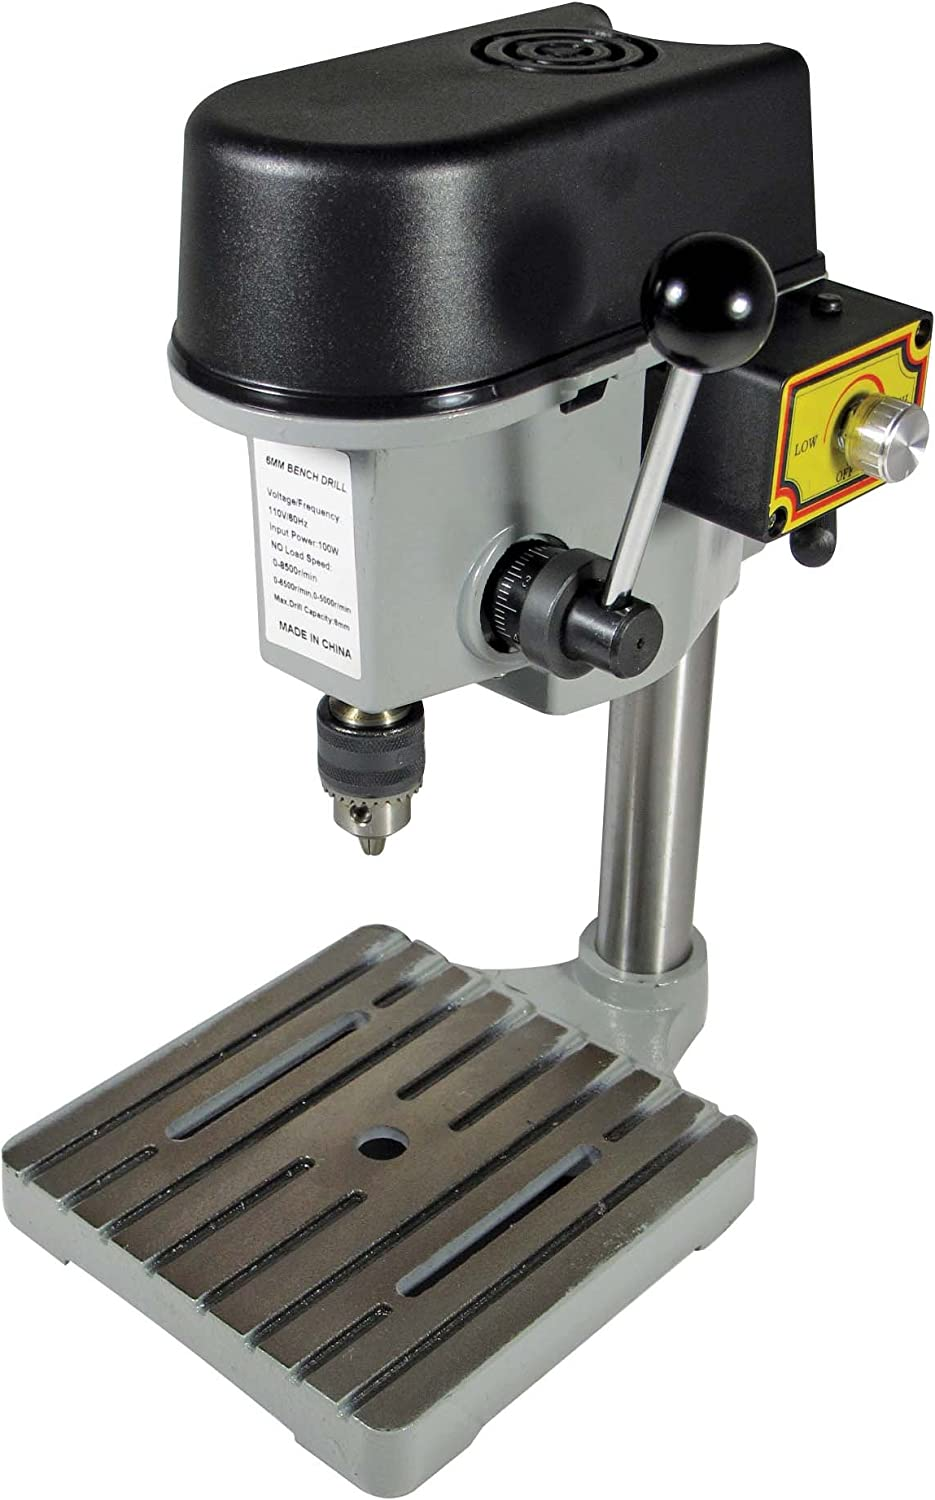 Top 5 best drill press for woodworking- best floor drill press (2020 Buying Guide) 3